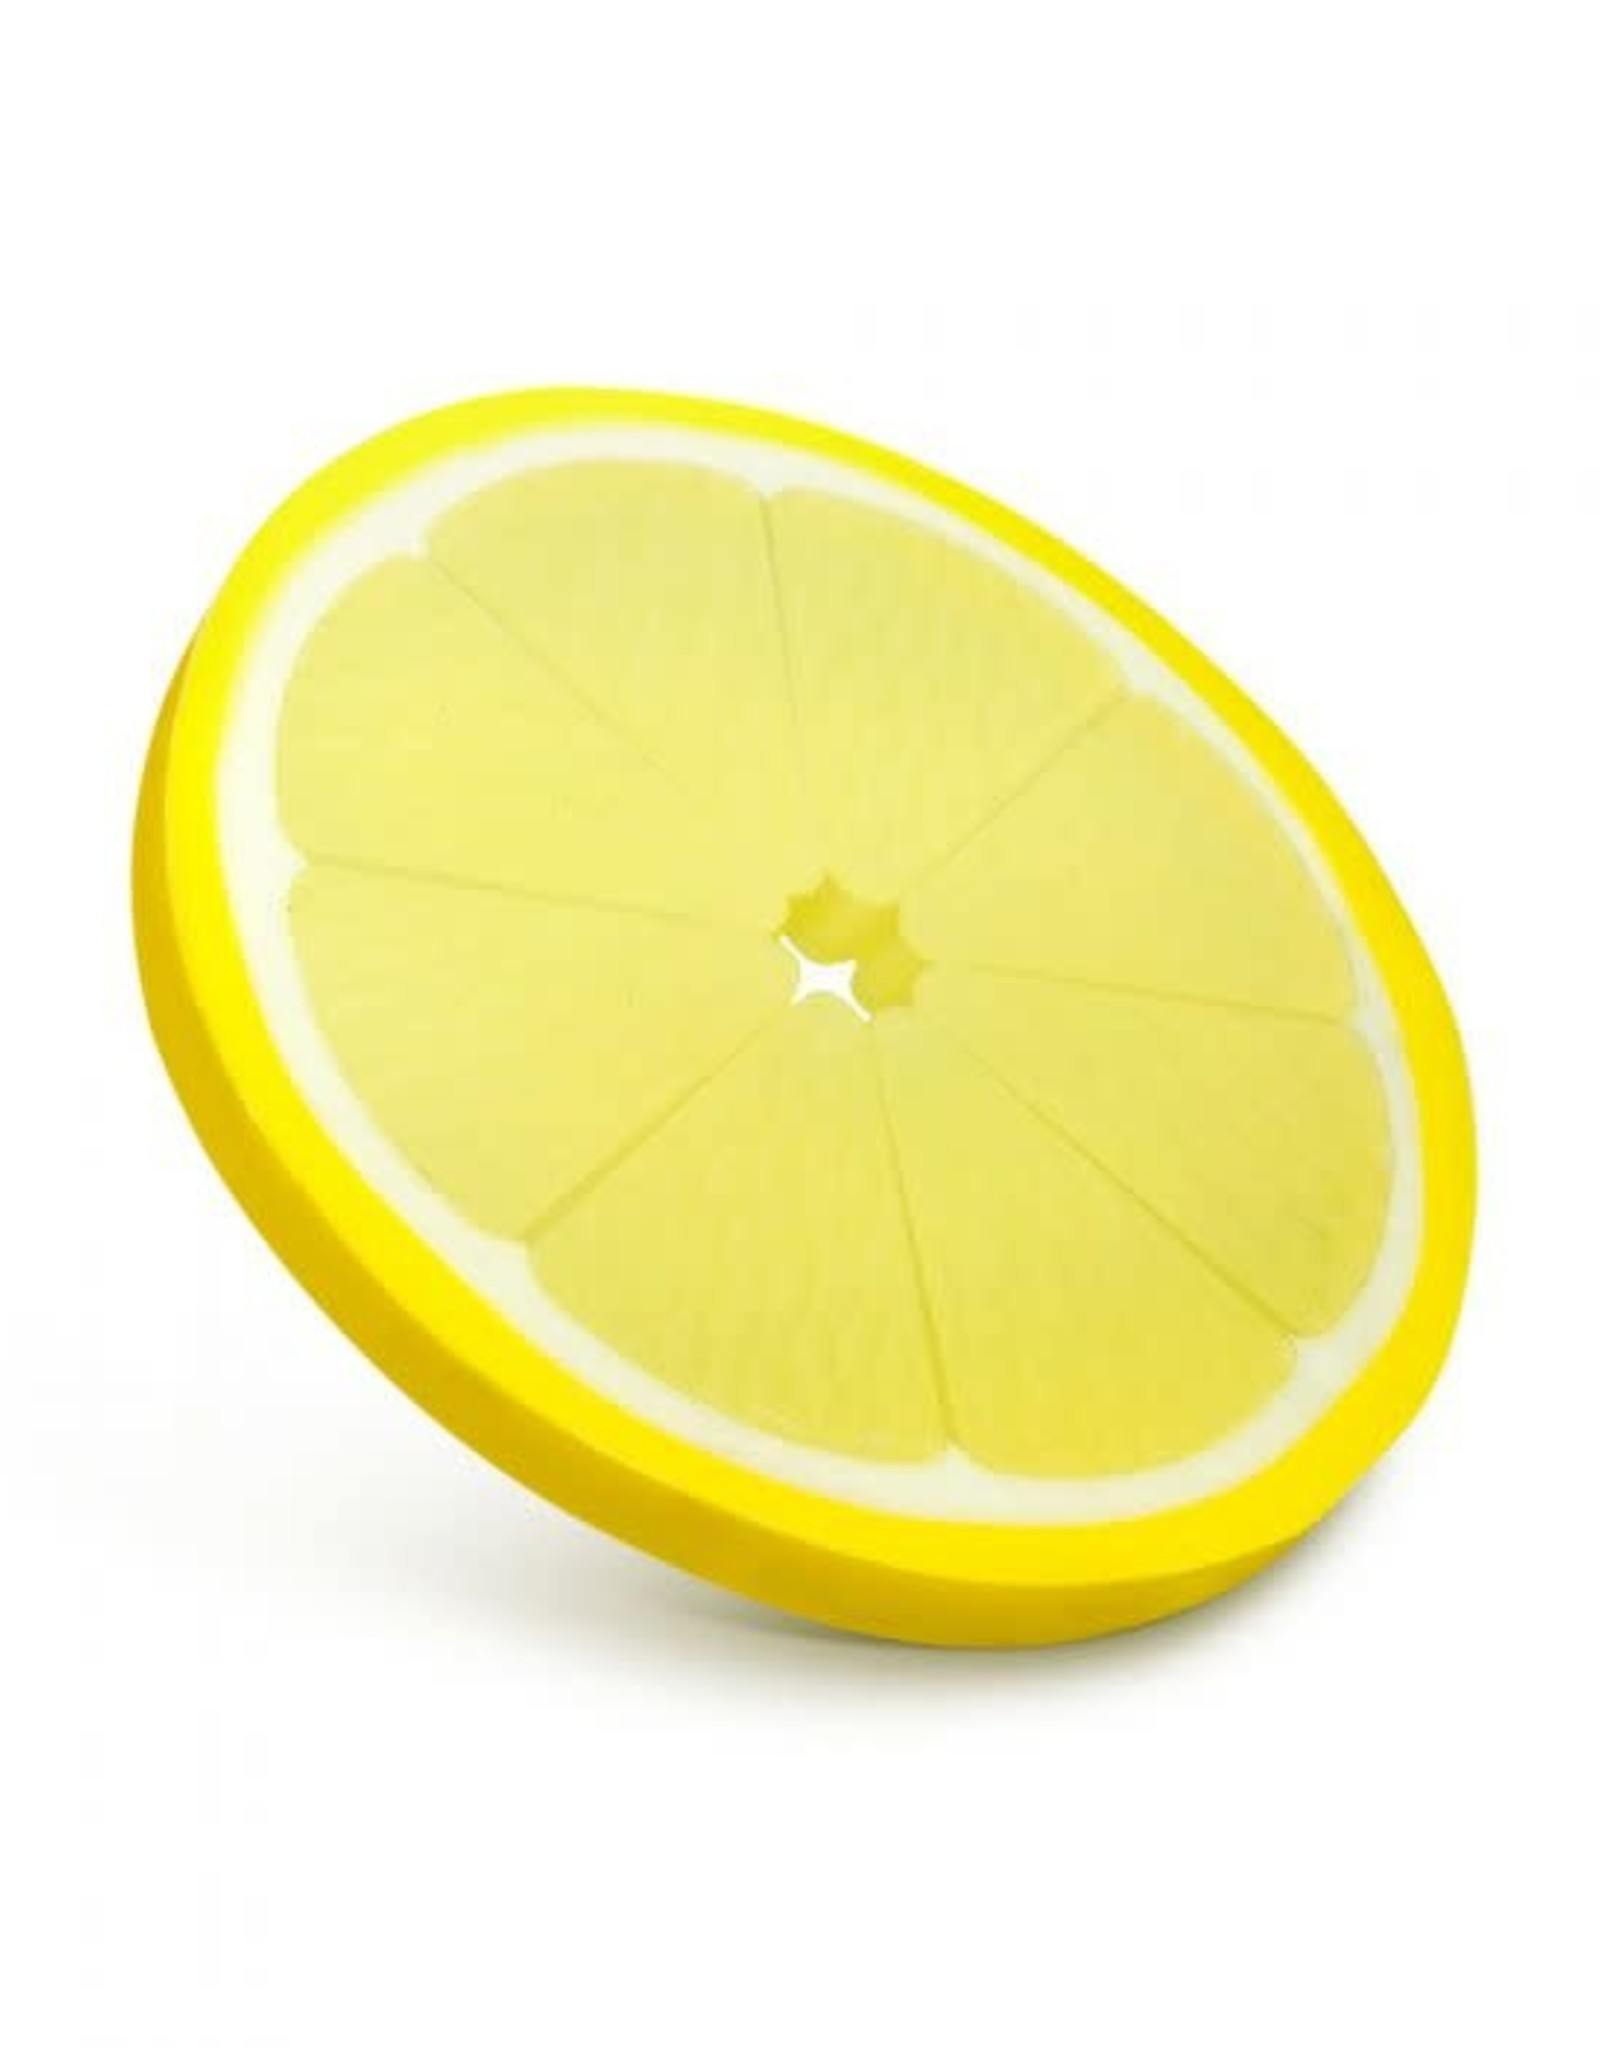 Fred & Friends CHILL, BABY LEMON-AID TEETHER